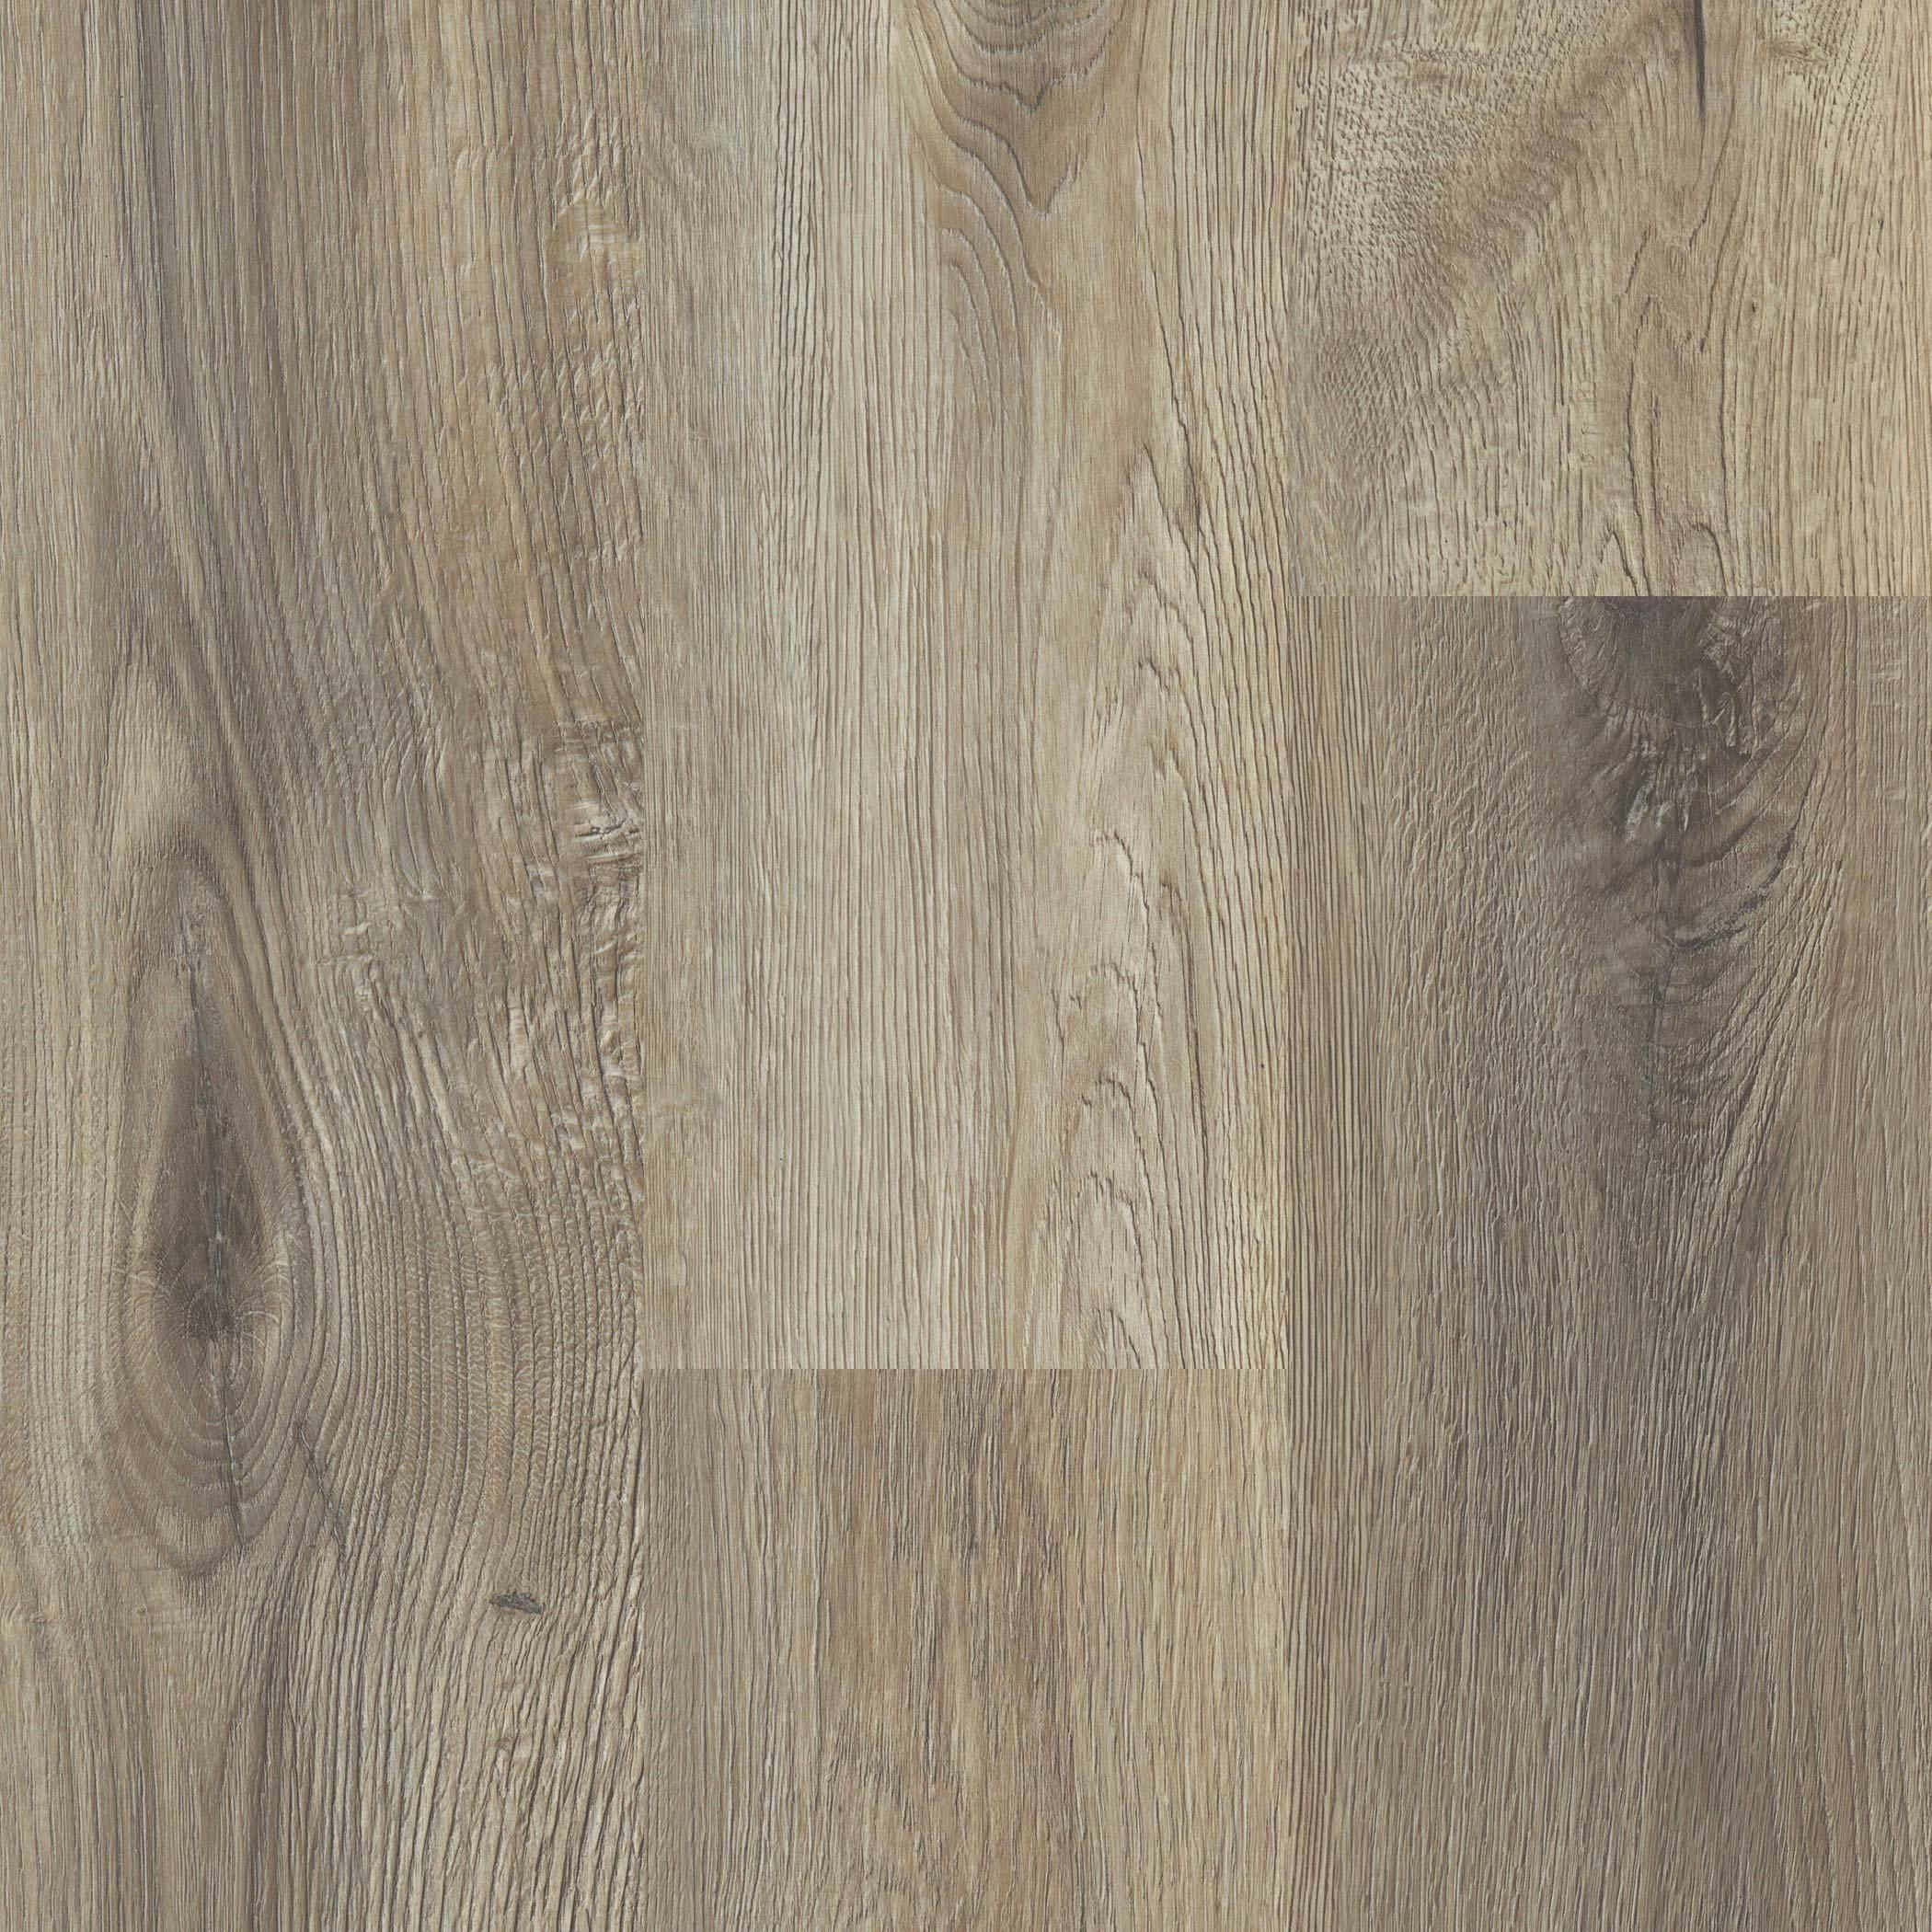 Mr Wise Buys Rigid Core Castlerock Oak Waterproof Vinyl Plank With Attached Pad Vinyl Plank Waterproof Vinyl Vinyl